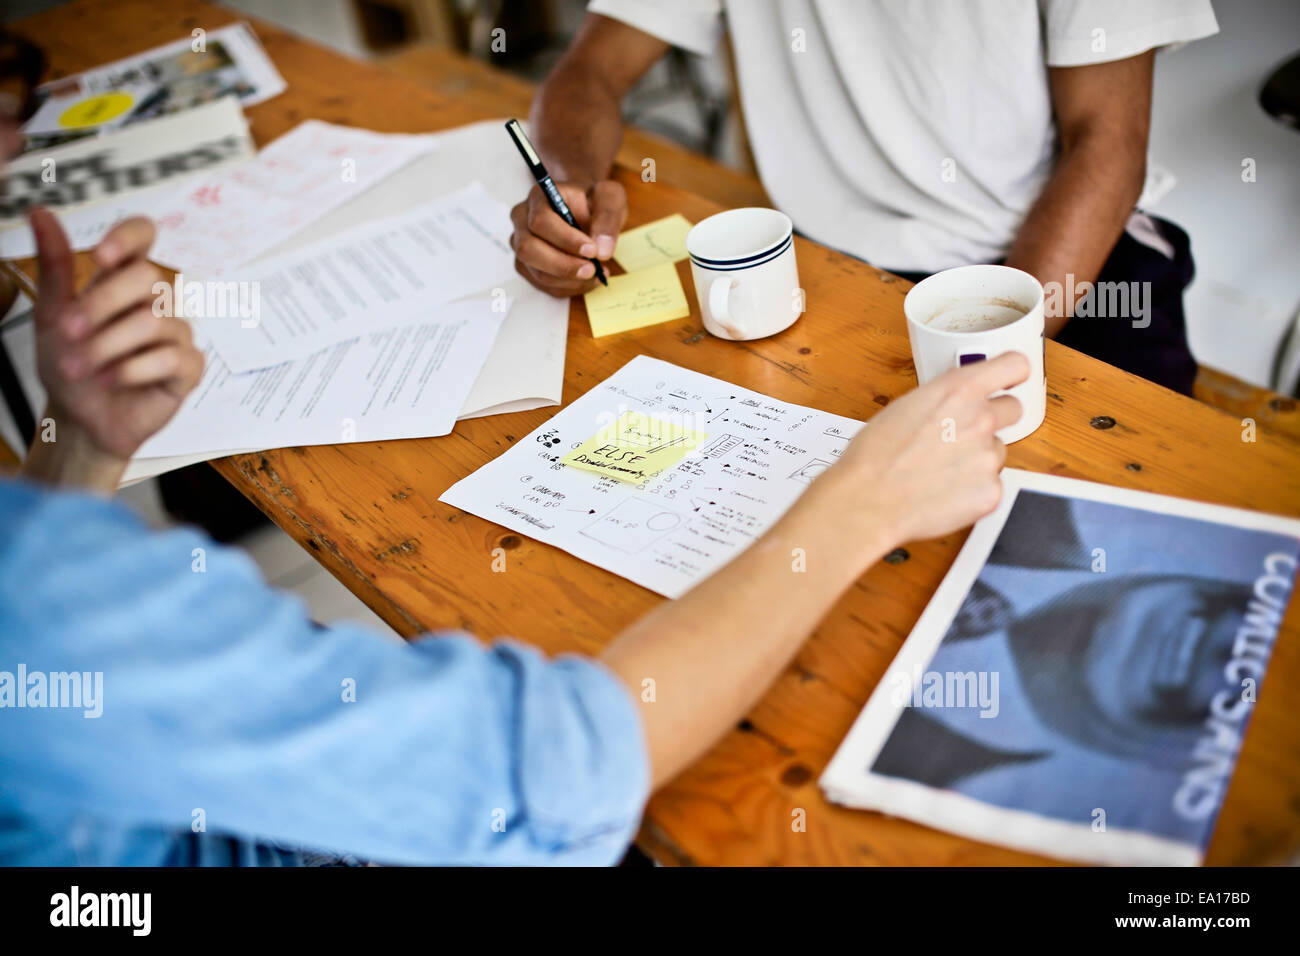 Brainstorming graphistes Photo Stock